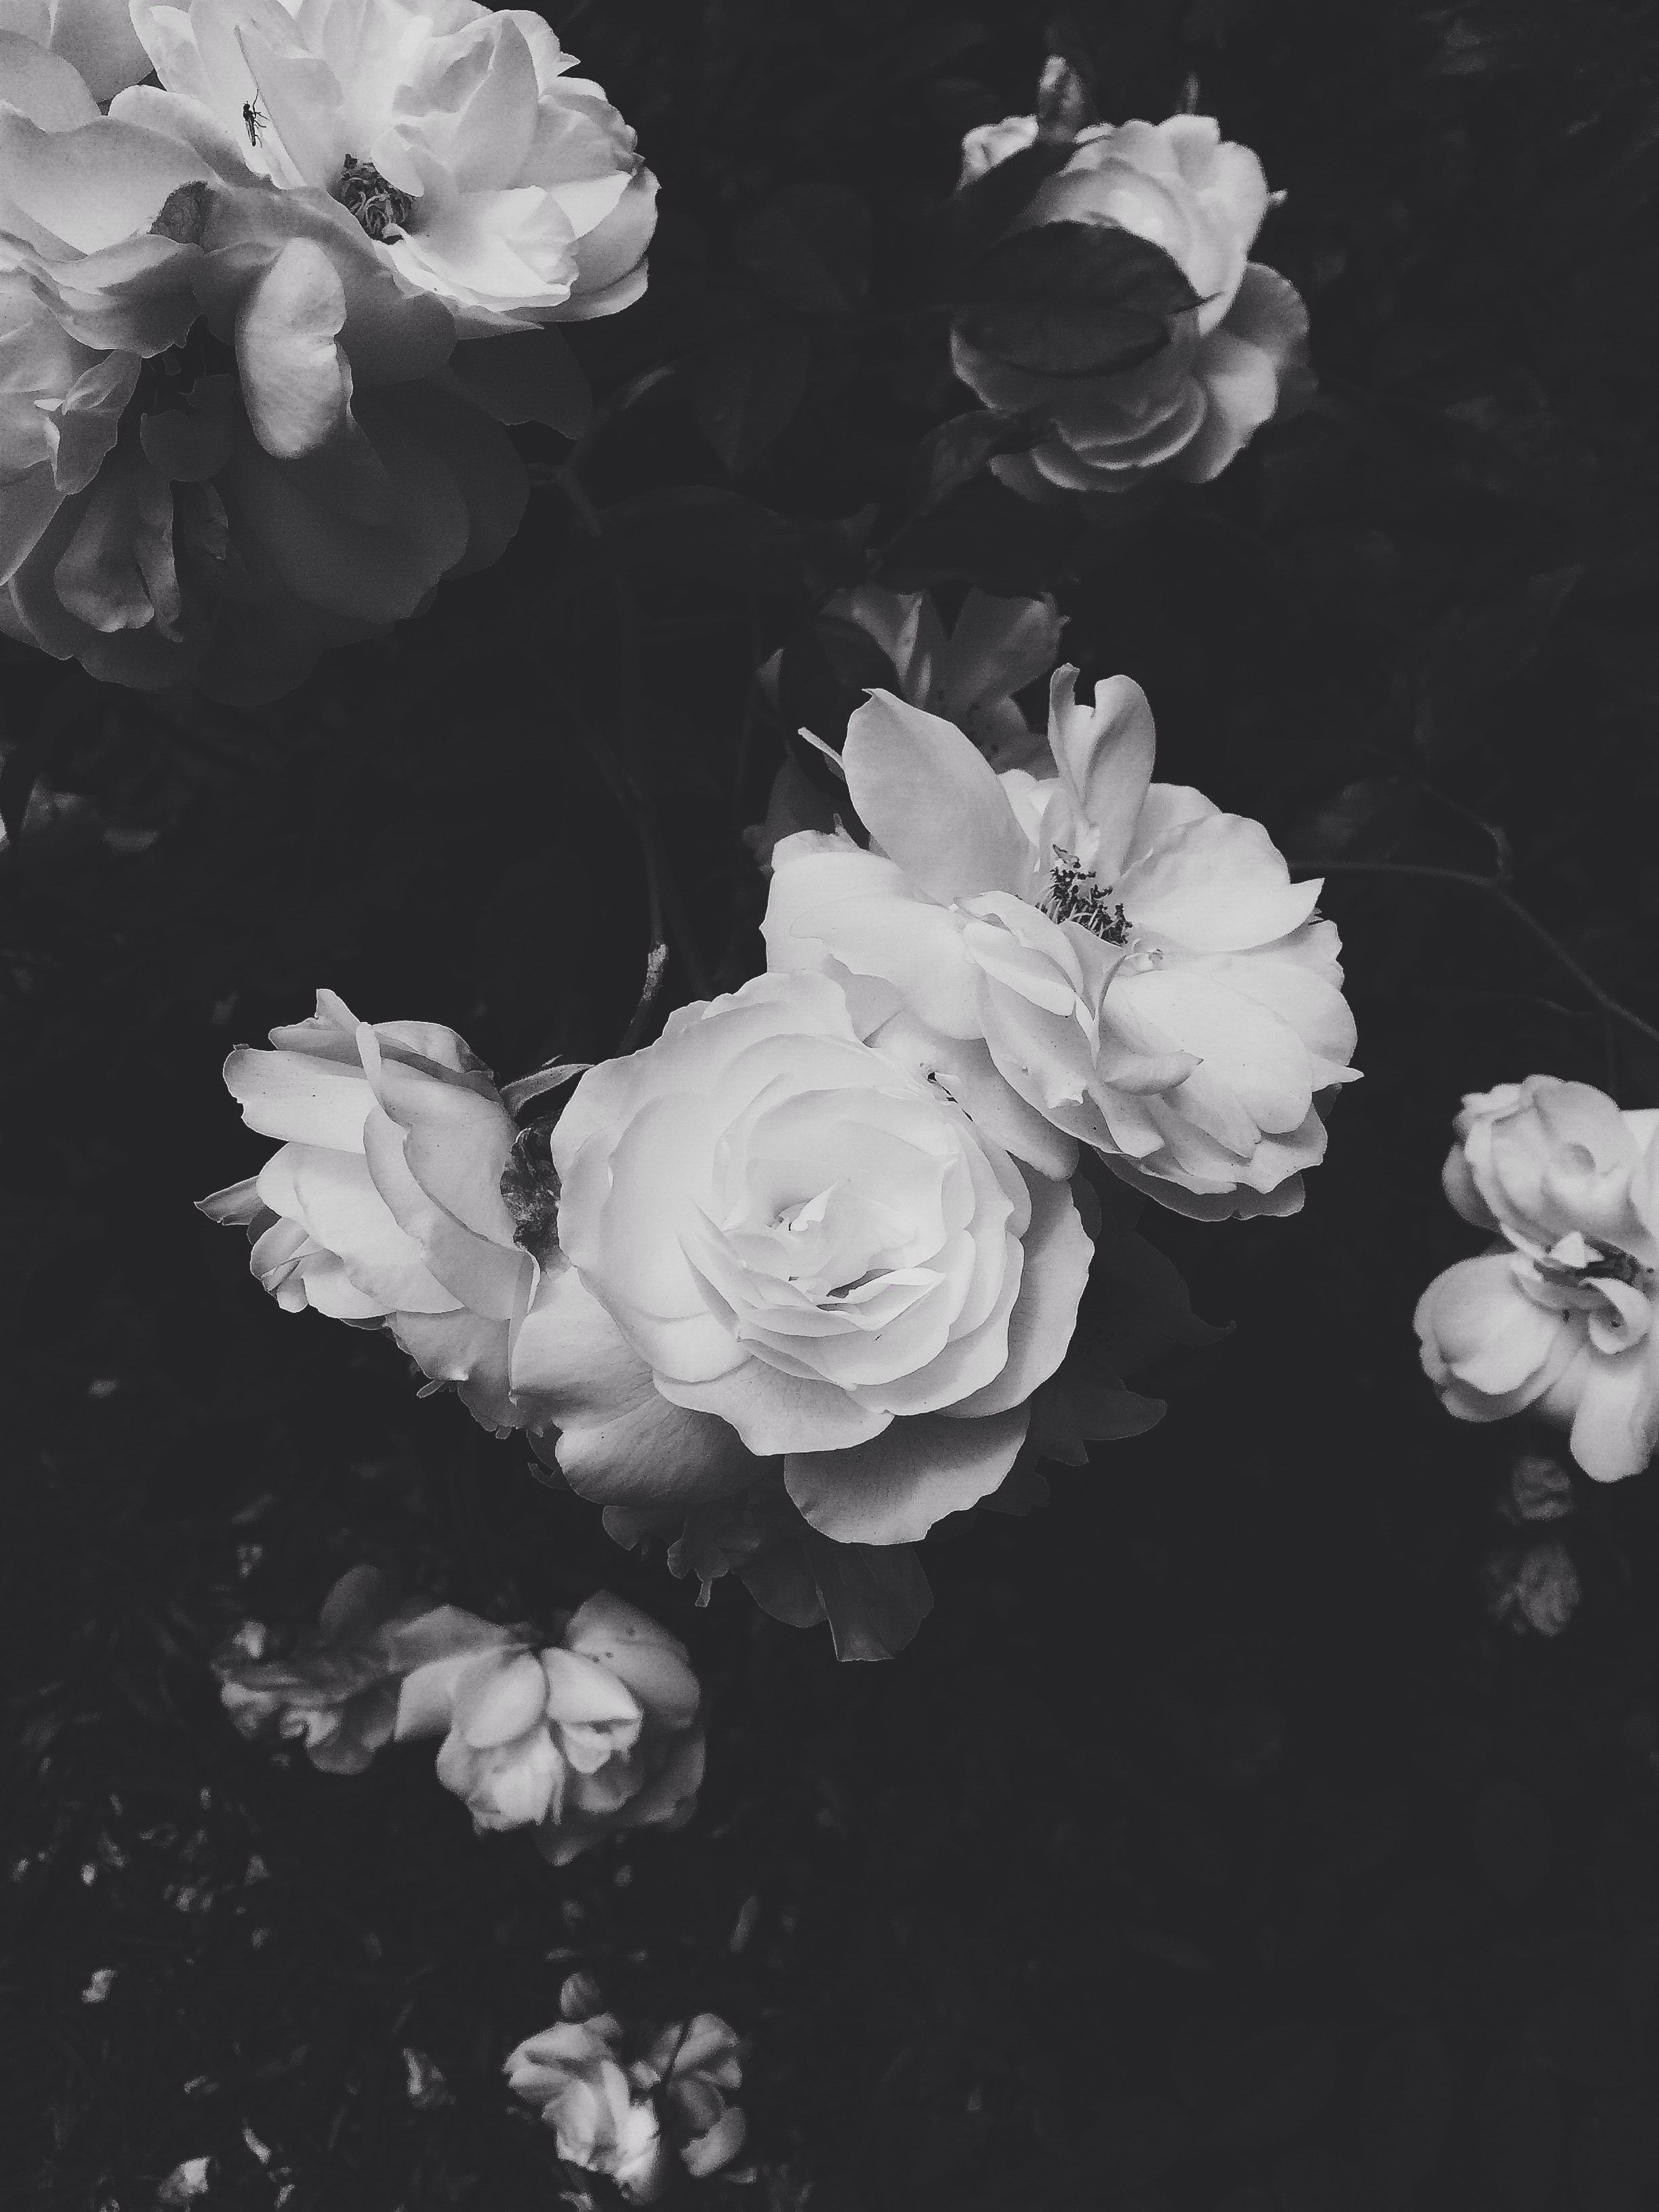 Pin By Heather Buzzelli On Black And White Black Background Wallpaper Black Aesthetic Wallpaper Dark Wallpaper